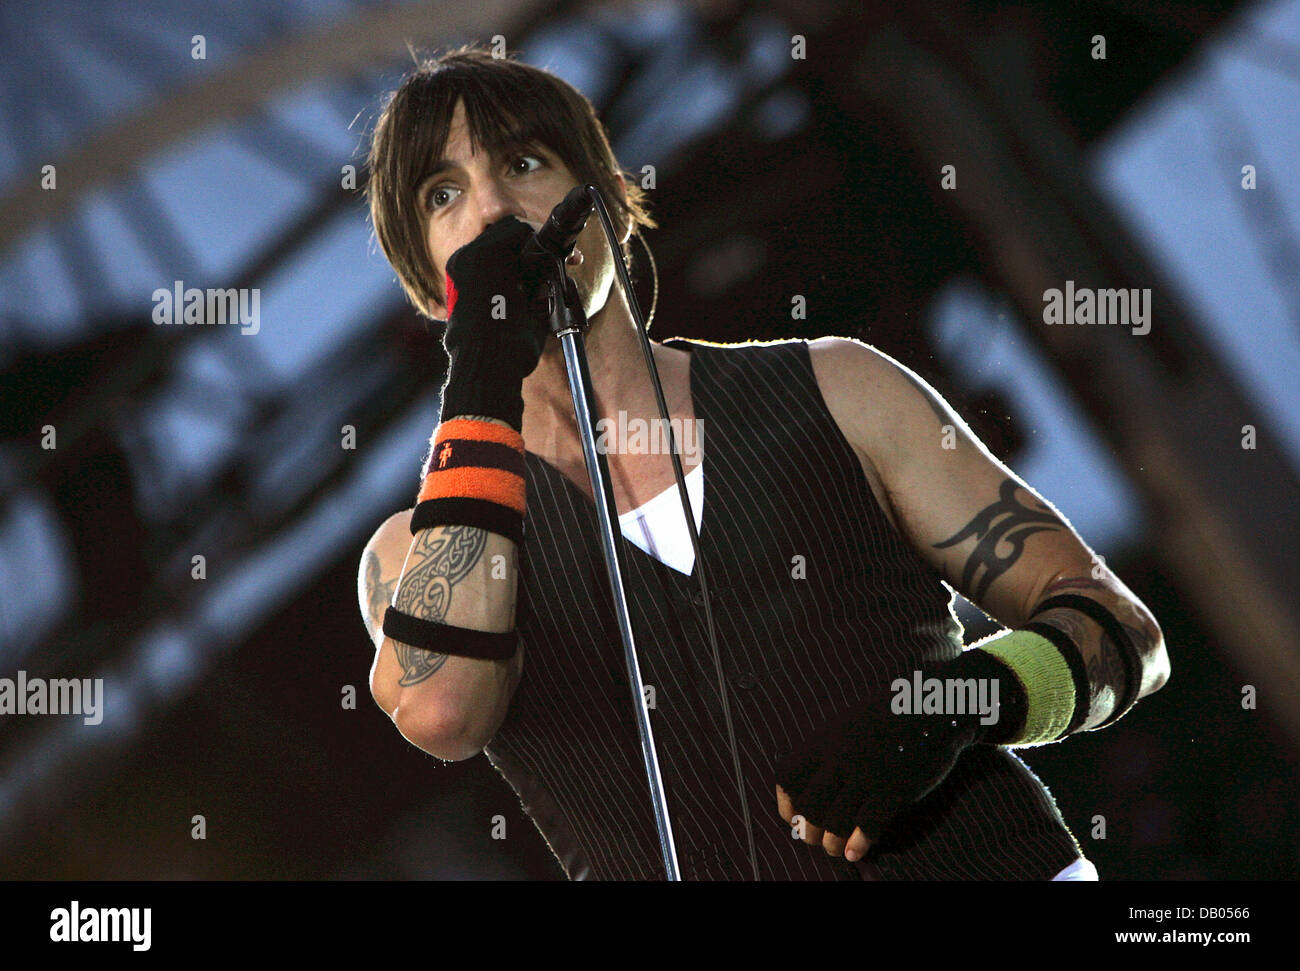 red hot chili peppers perform stock photos red hot chili peppers perform stock images alamy. Black Bedroom Furniture Sets. Home Design Ideas